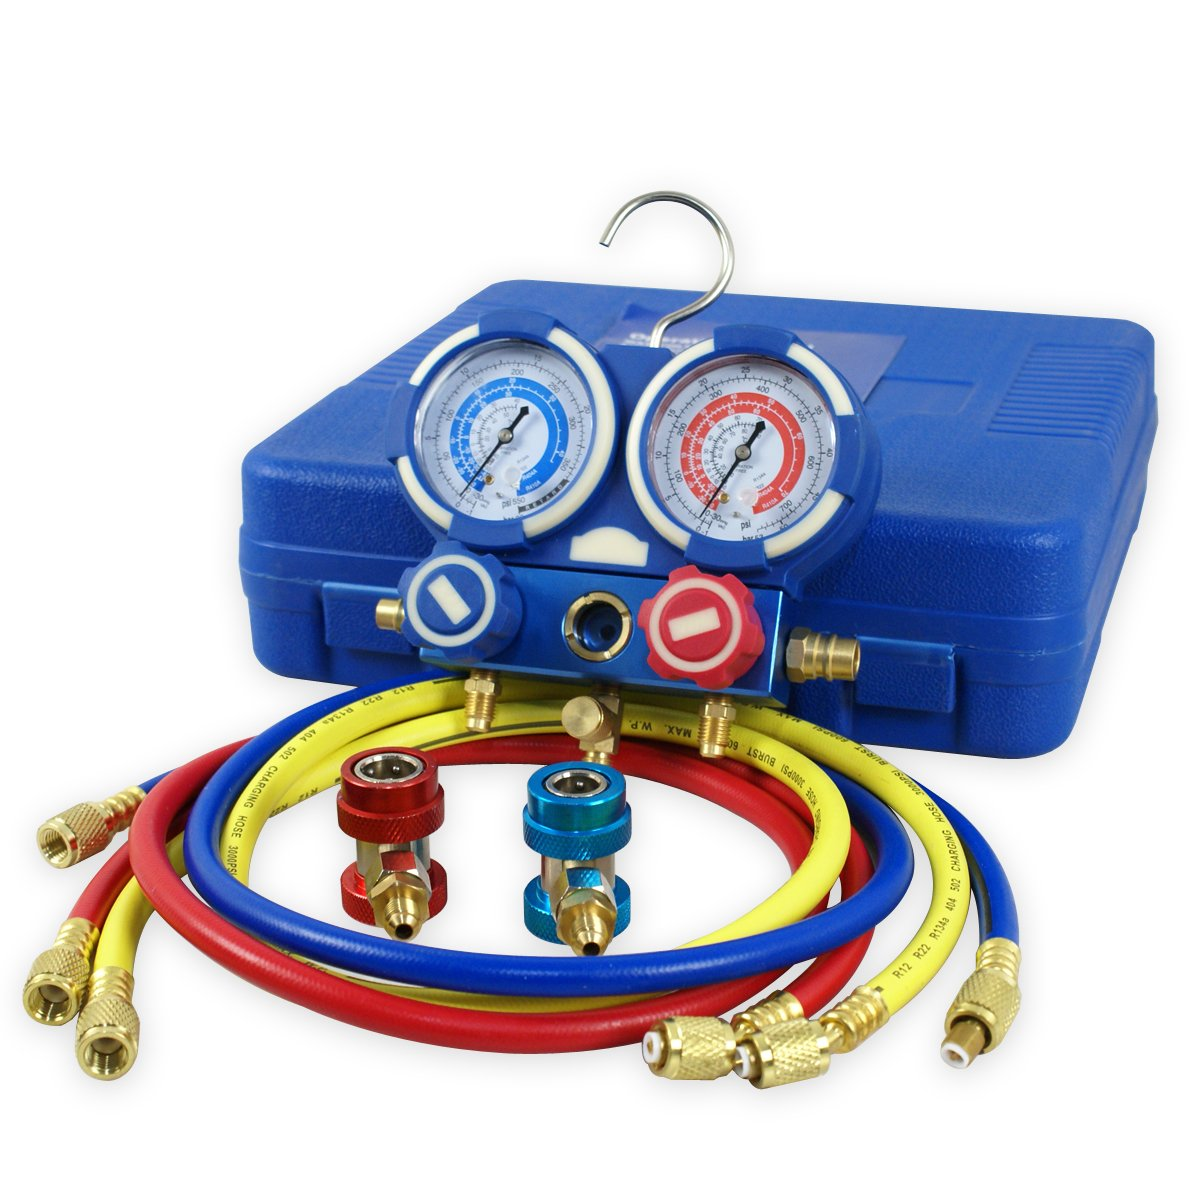 "ZENY Diagnostic A/C Manifold Gauge Set R134a Refrigeration Kit Brass Auto Serivice Kit 4FT w/Case, 1/4"" SAE Fittings"